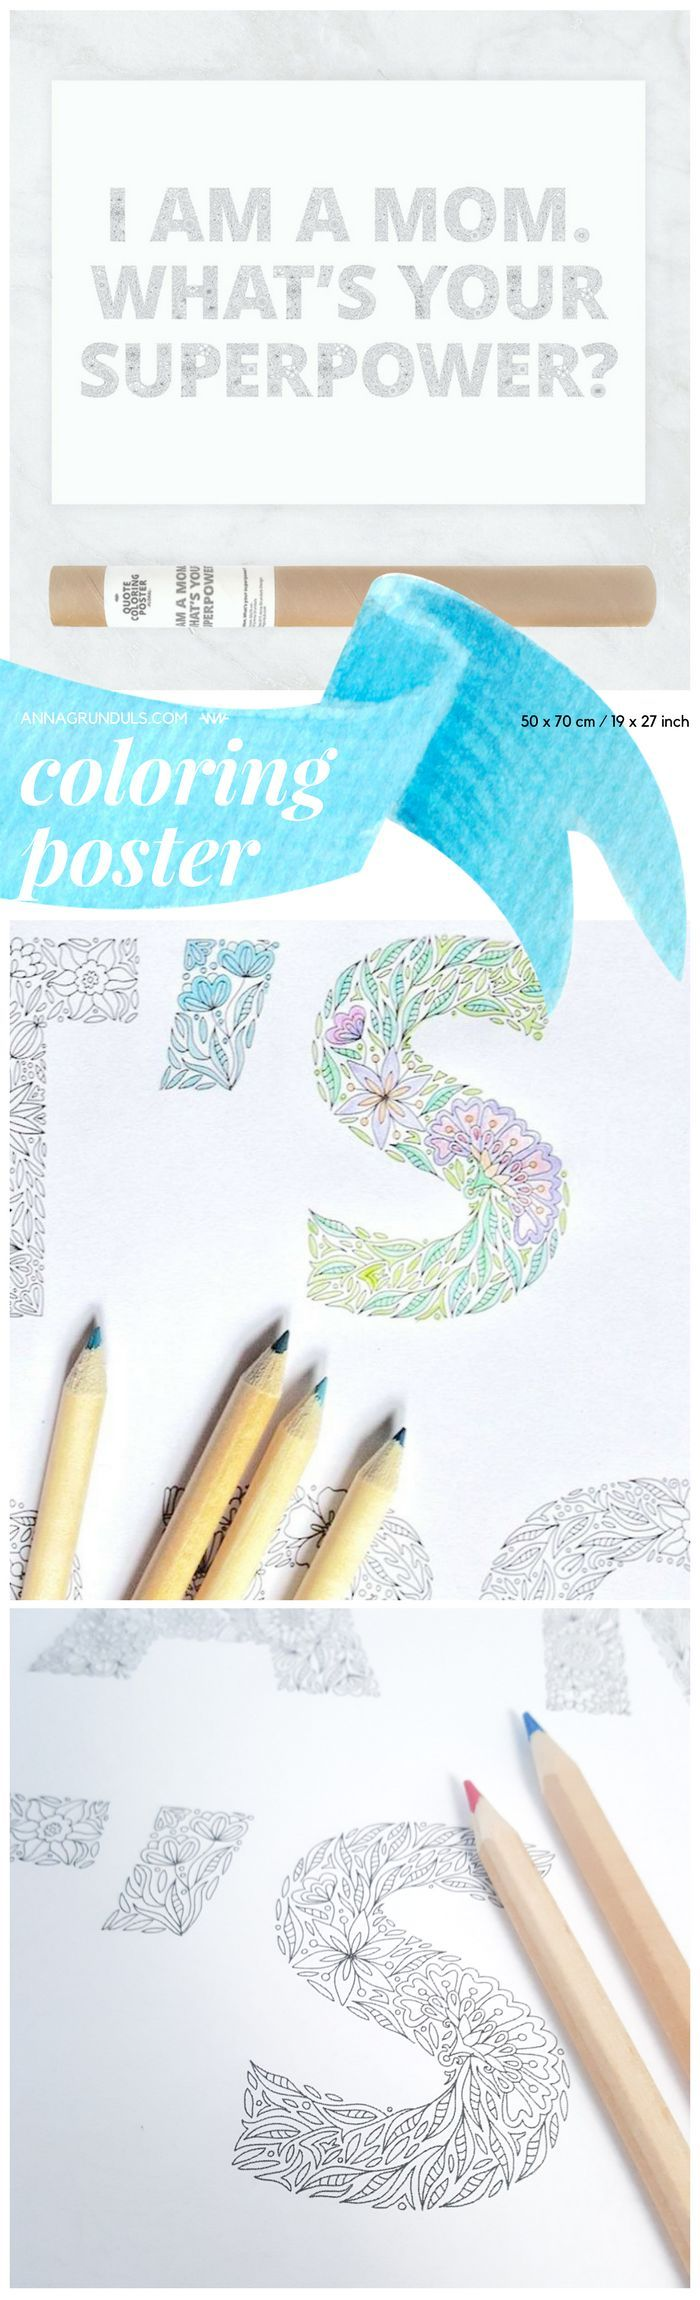 My friends are starting to marry each other and have children, so this poster is going to be a great gift this year! Adult coloring would be a great way to unwind, when the baby sleeps. As a new mother, you can always use some motivation too!